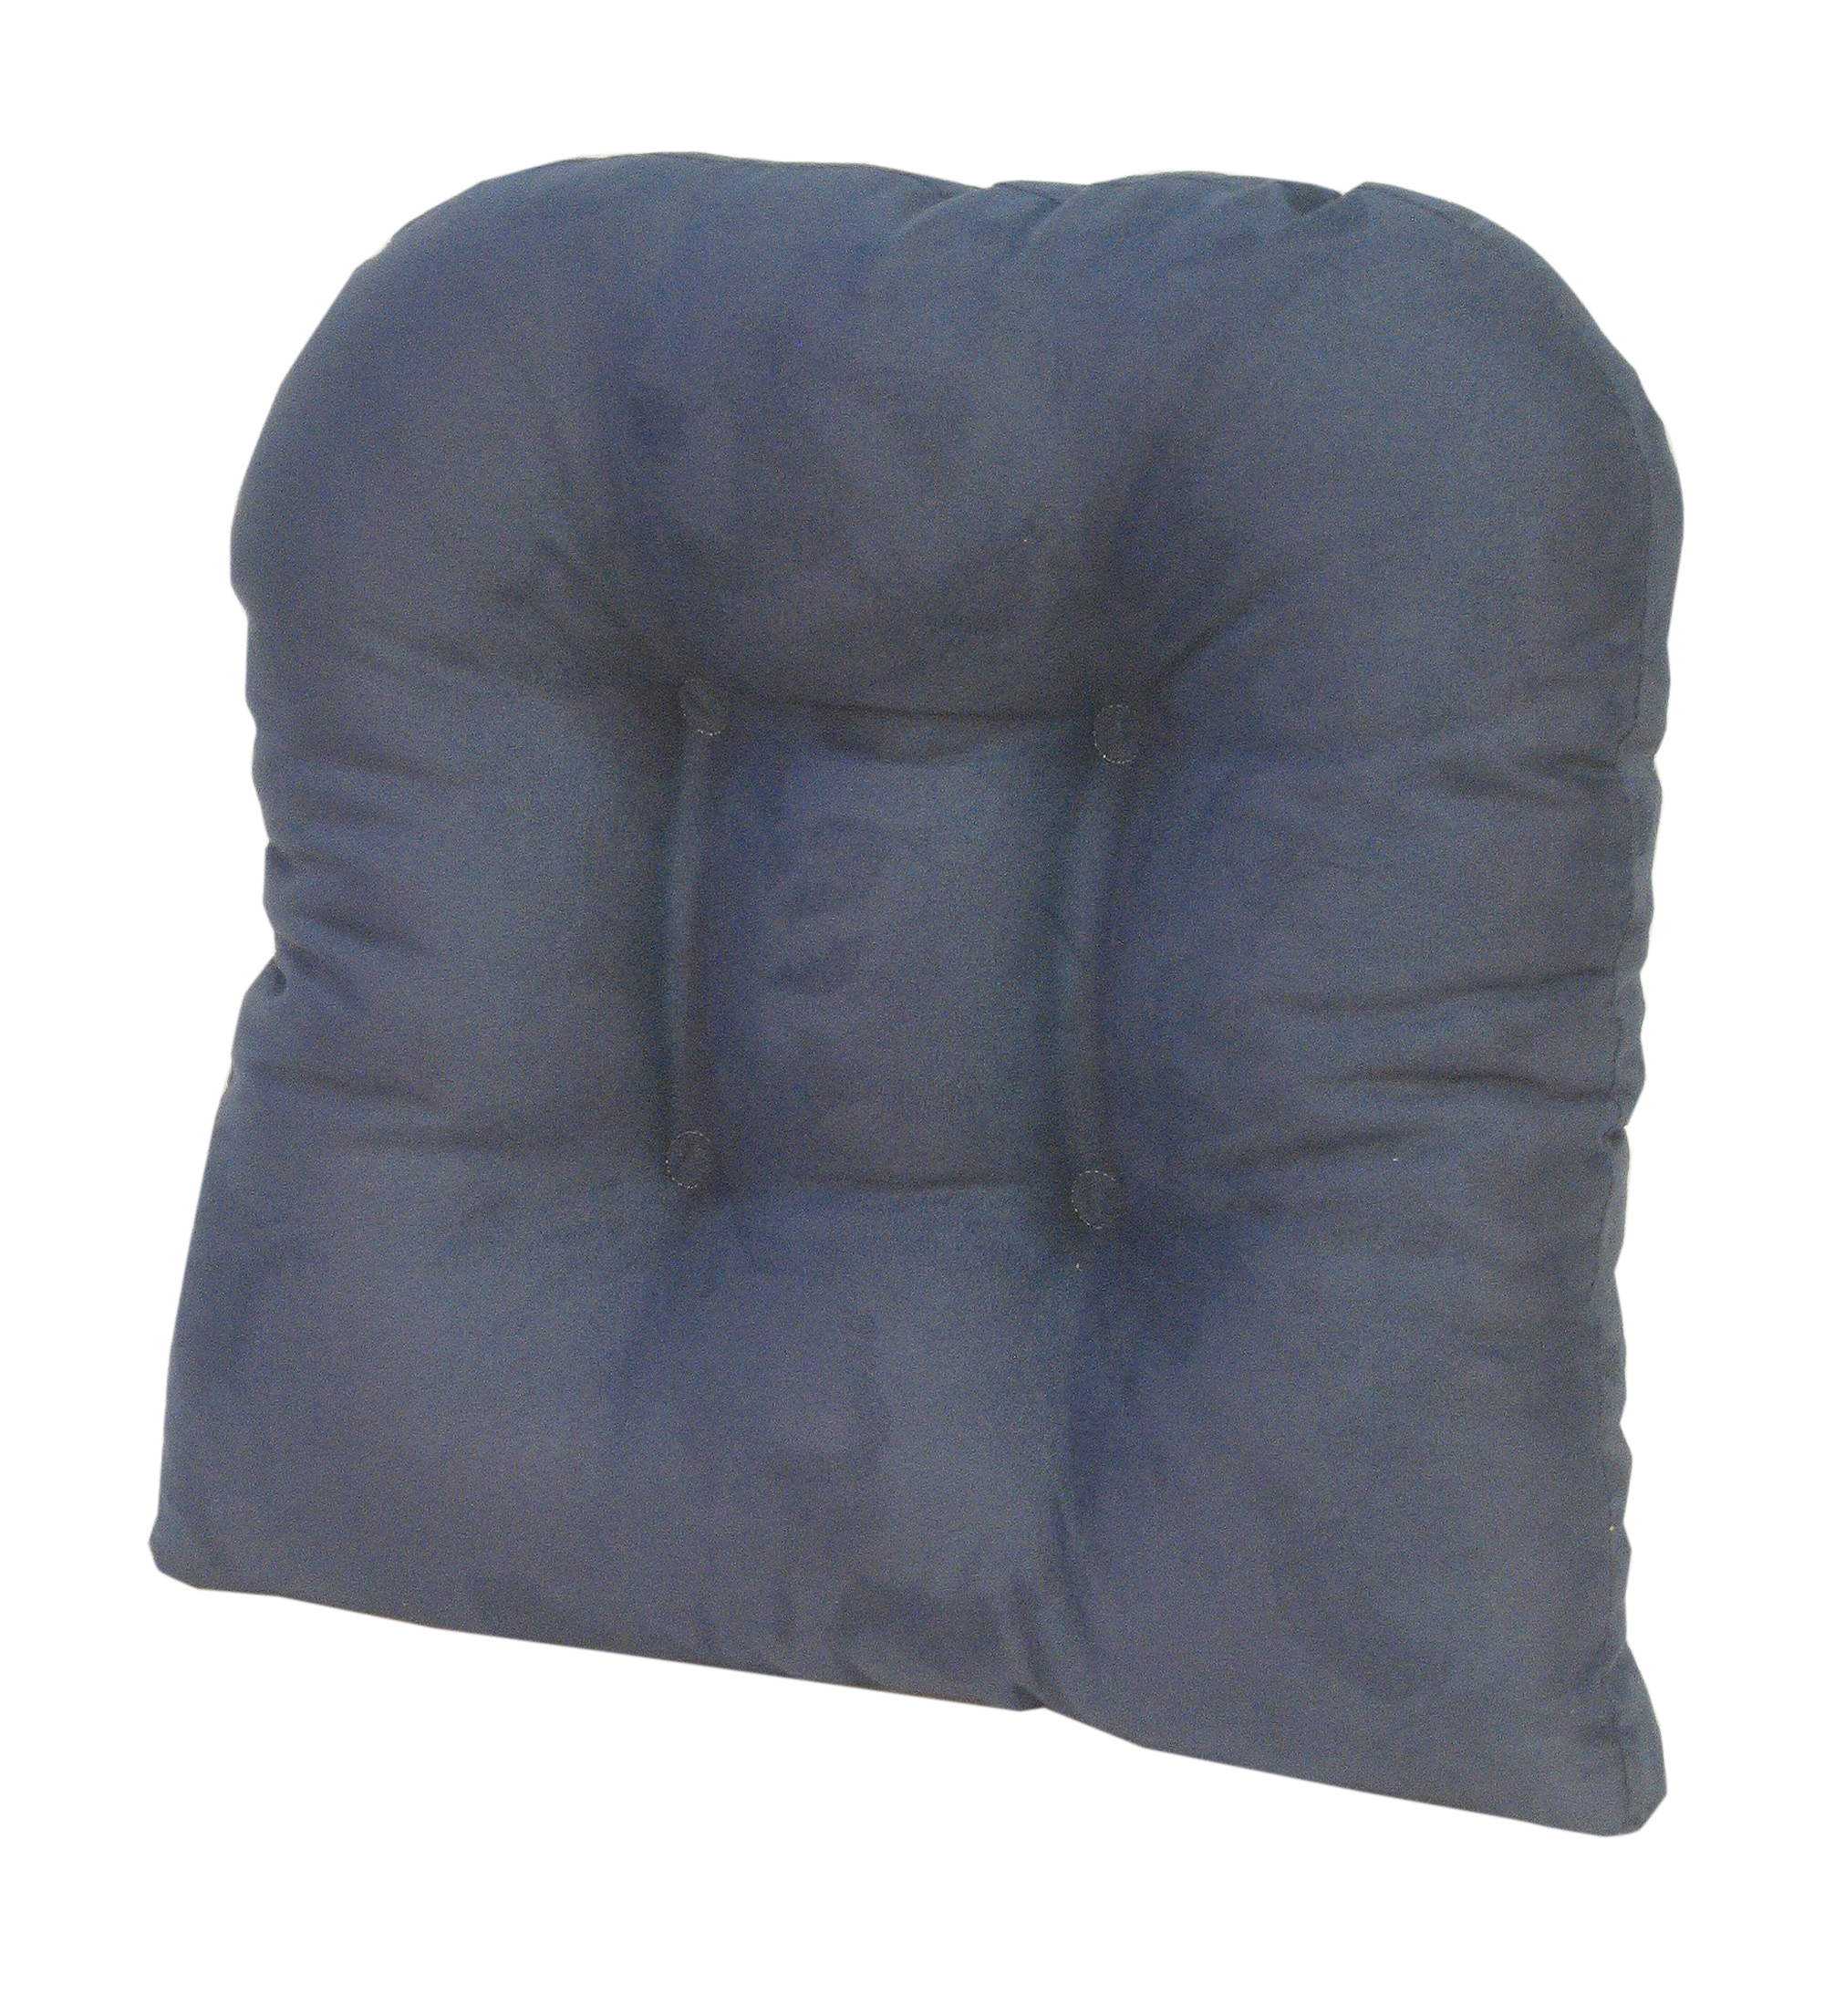 chair pads non slip aluminum chaise lounge chairs the gripper large tufted universal cushions